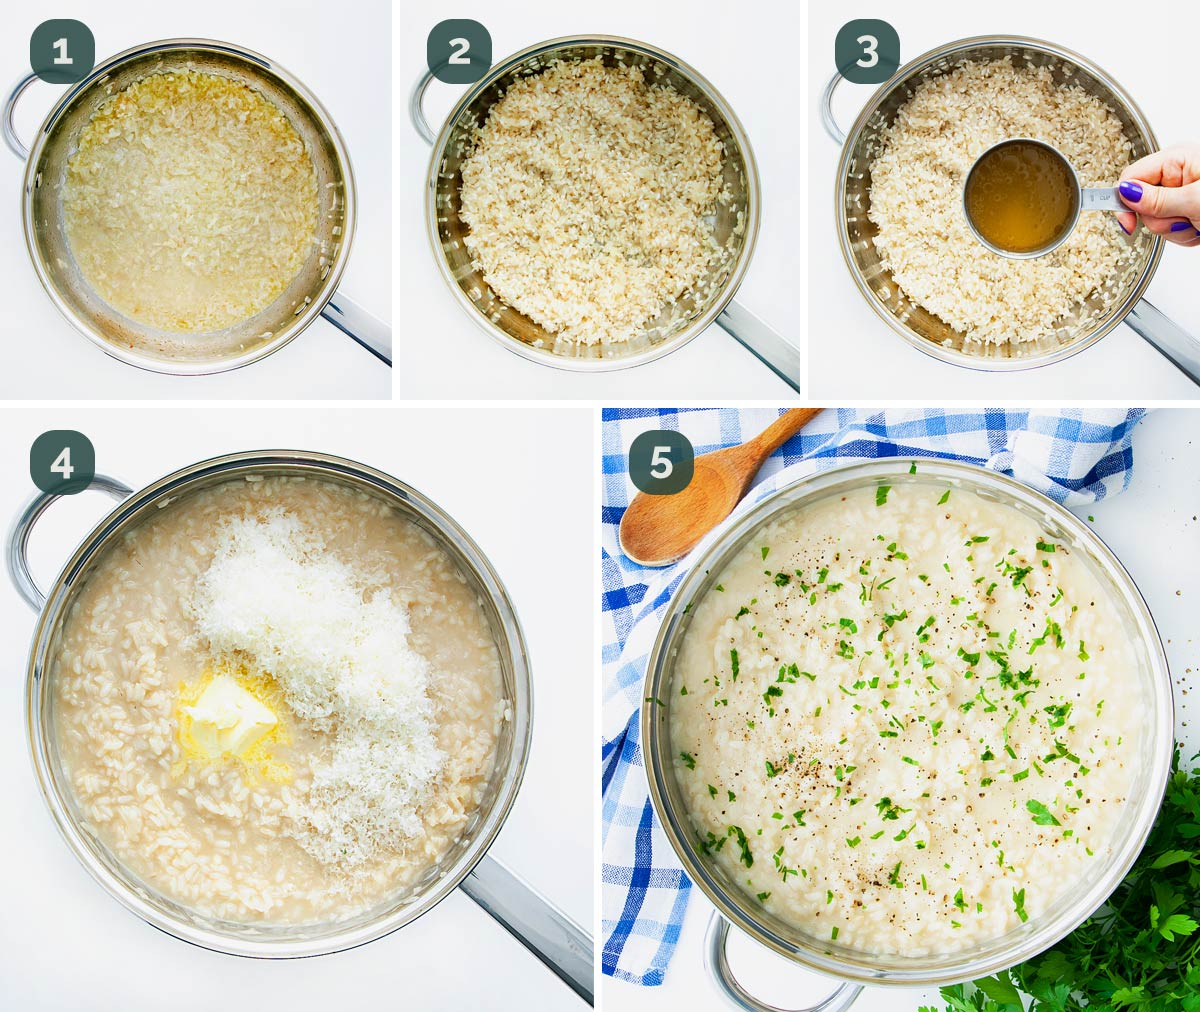 process shots showing how to make risotto.